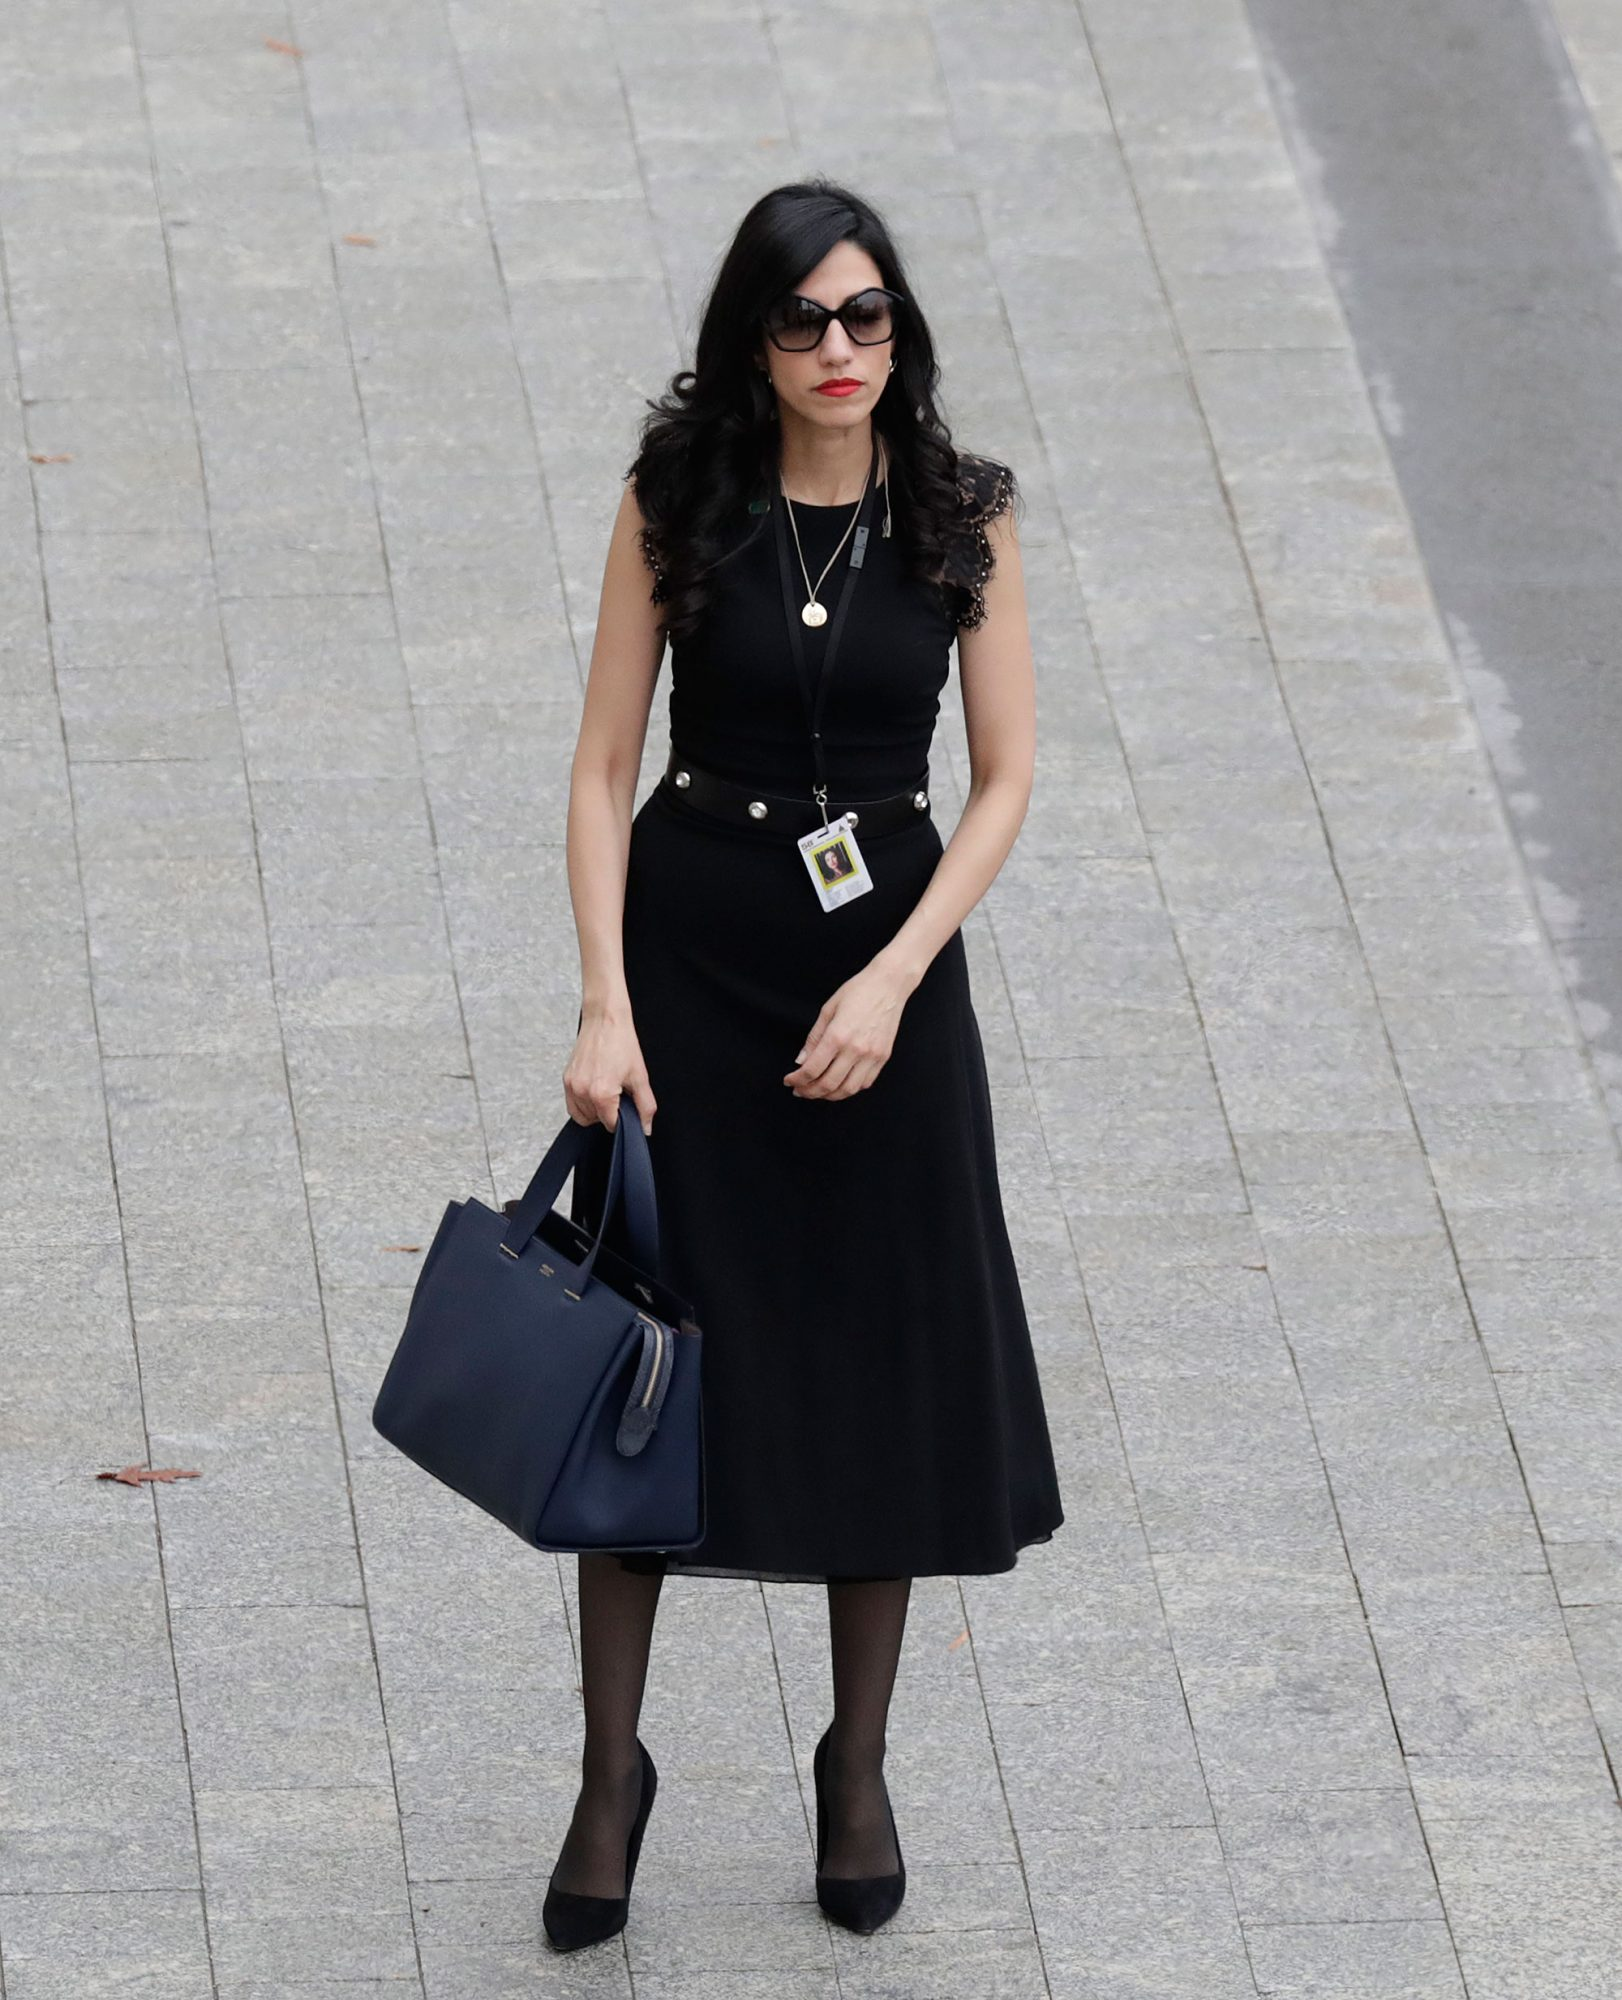 WASHINGTON, DC - JANUARY 20: Hillary Clinton aide Huma Abedin arrives near the east front steps of the Capitol Building before President-elect Donald Trump is sworn in at the 58th Presidential Inauguration on Capitol Hill January 20, 2017 in Washington, D.C. In today's inauguration ceremony Donald J. Trump becomes the 45th president of the United States. (Photo by John Angelillo-Pool/Getty Images)